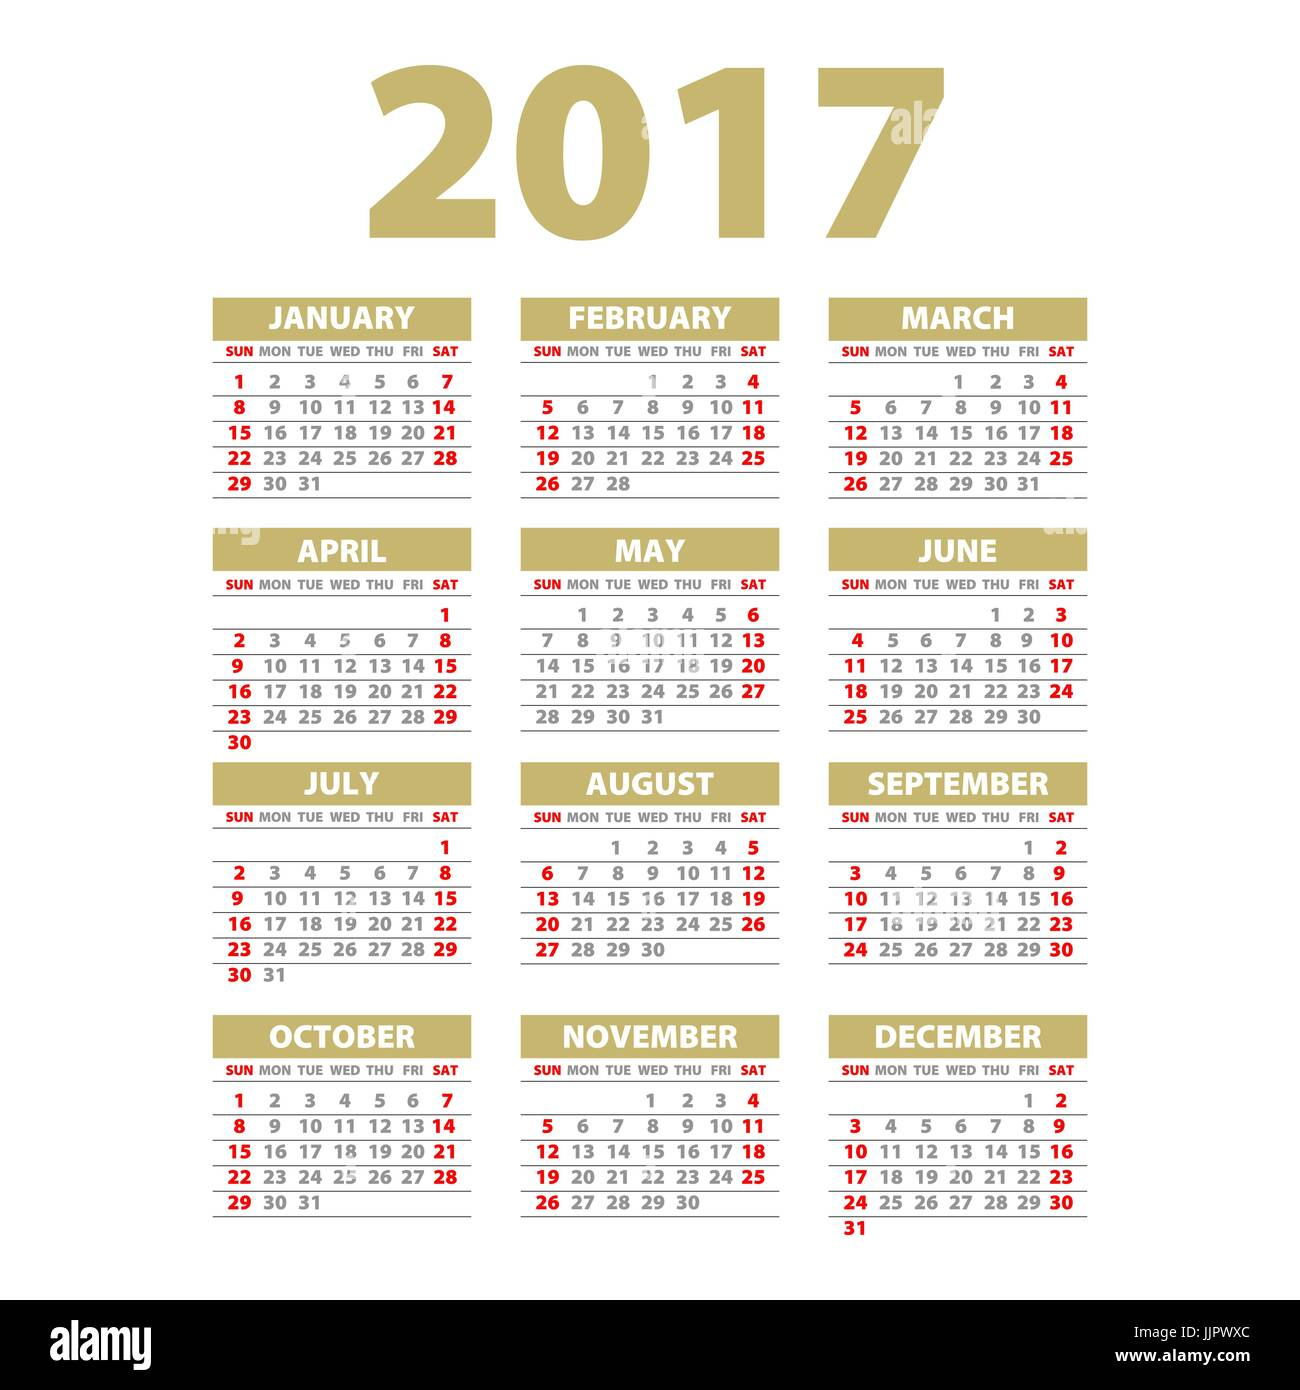 2017 Calendar Design In Yellow Beige Color Wall Quarterly